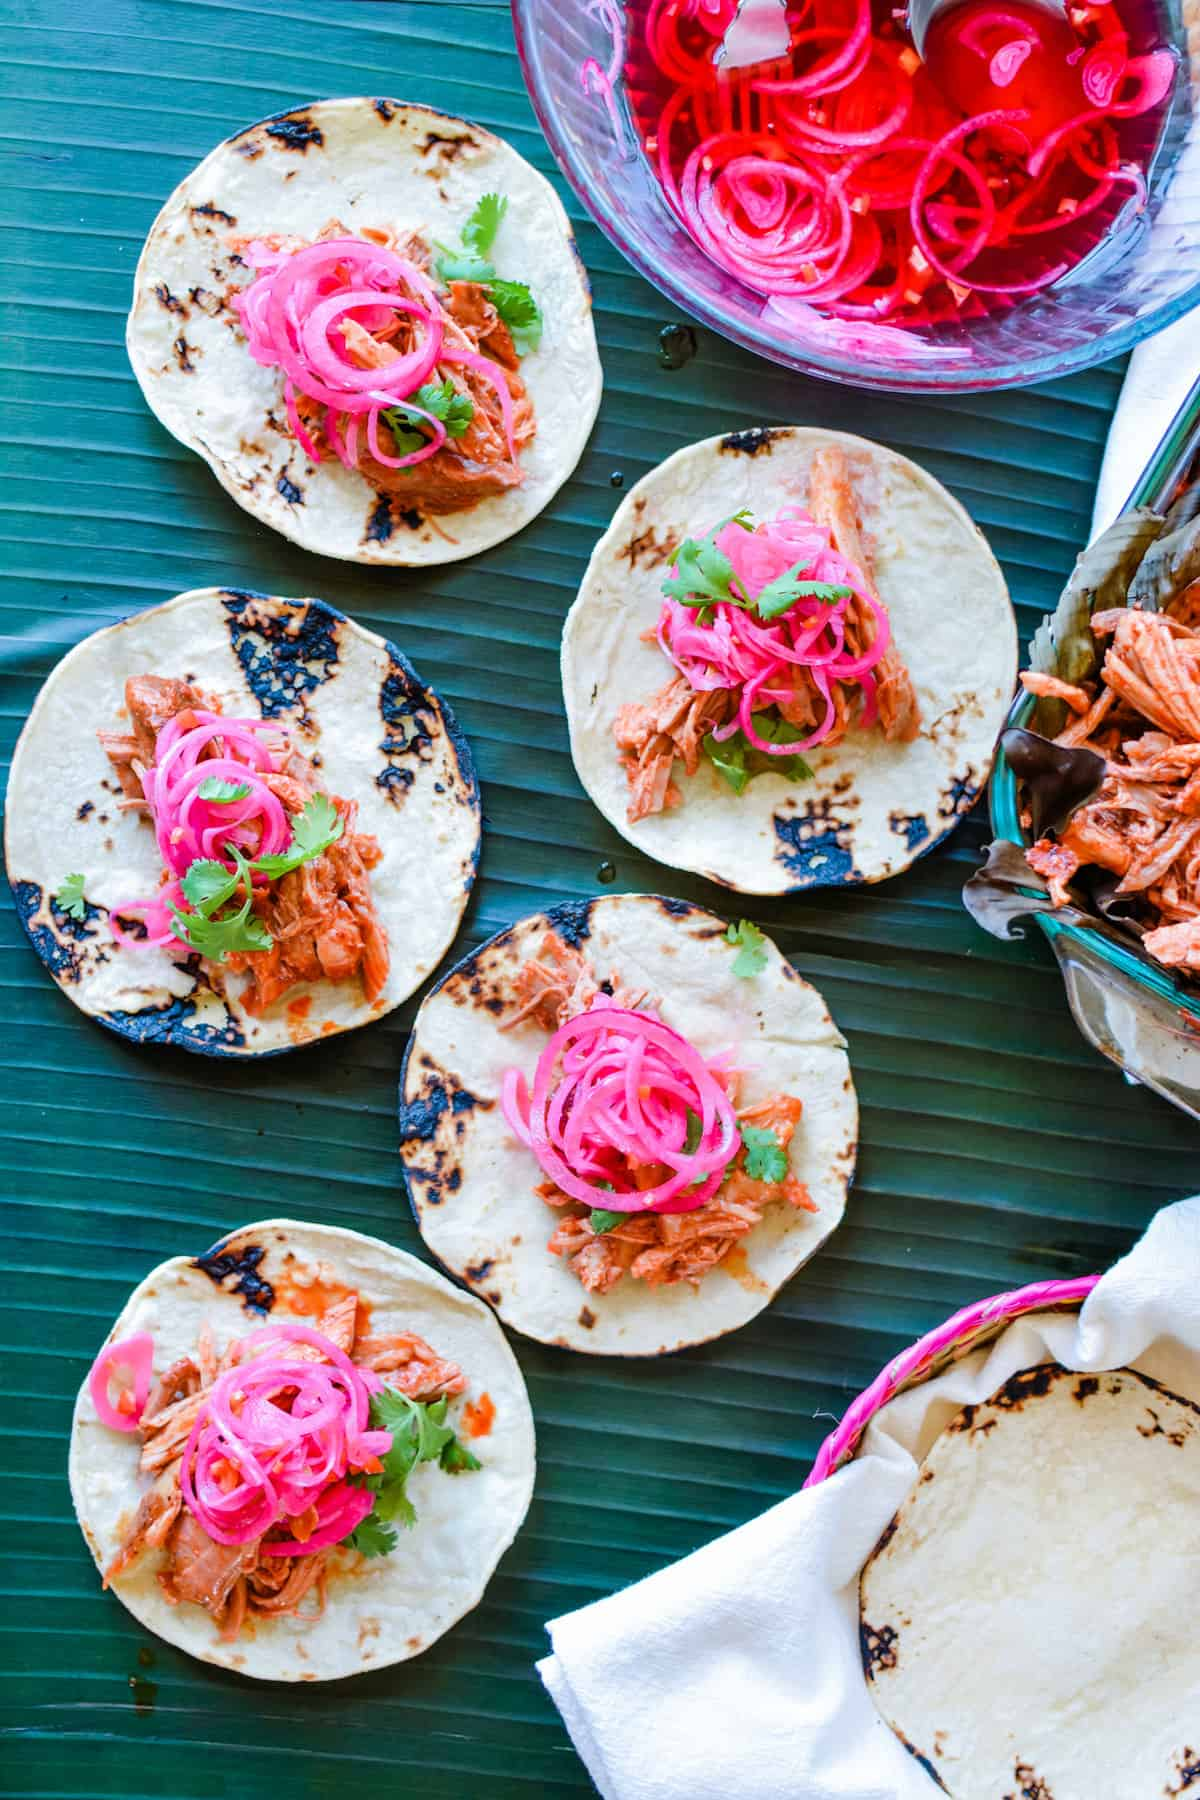 Five pork tacos with pickled red onions on top sitting on a green banana leaf with a bowl of pickled red onions next to them.